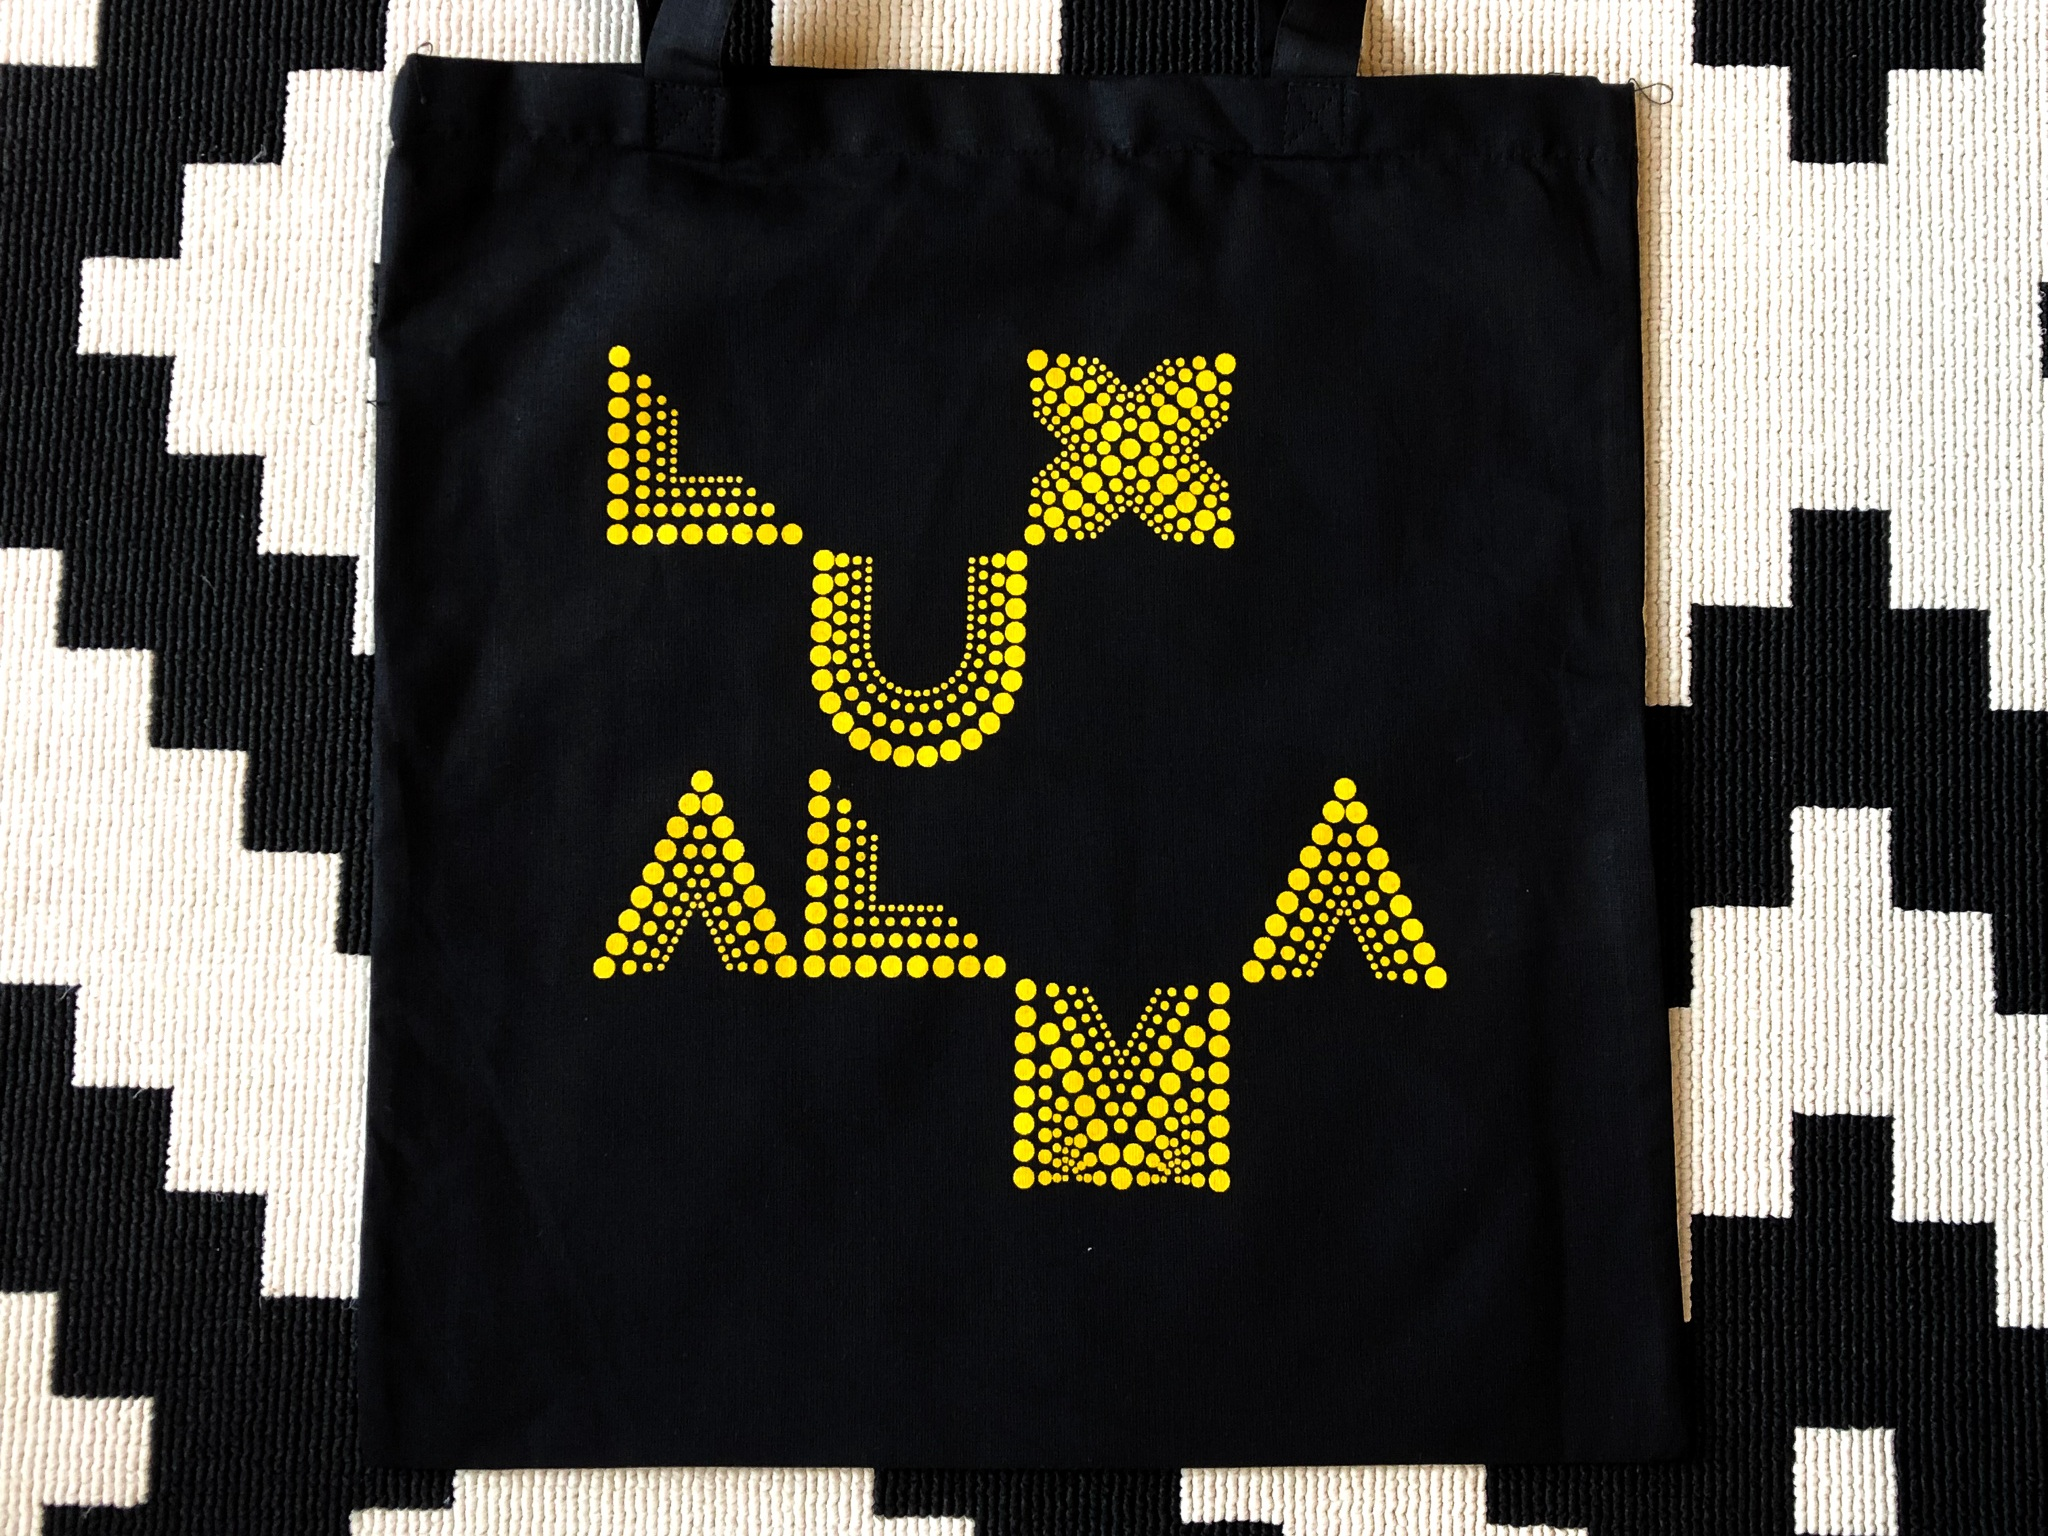 LUX ALMA Tote Bag - €10 plus postage    Designed by Niall Sweeney of Pony Box.  Screen Printed by the T-Shirt Company in Dublin